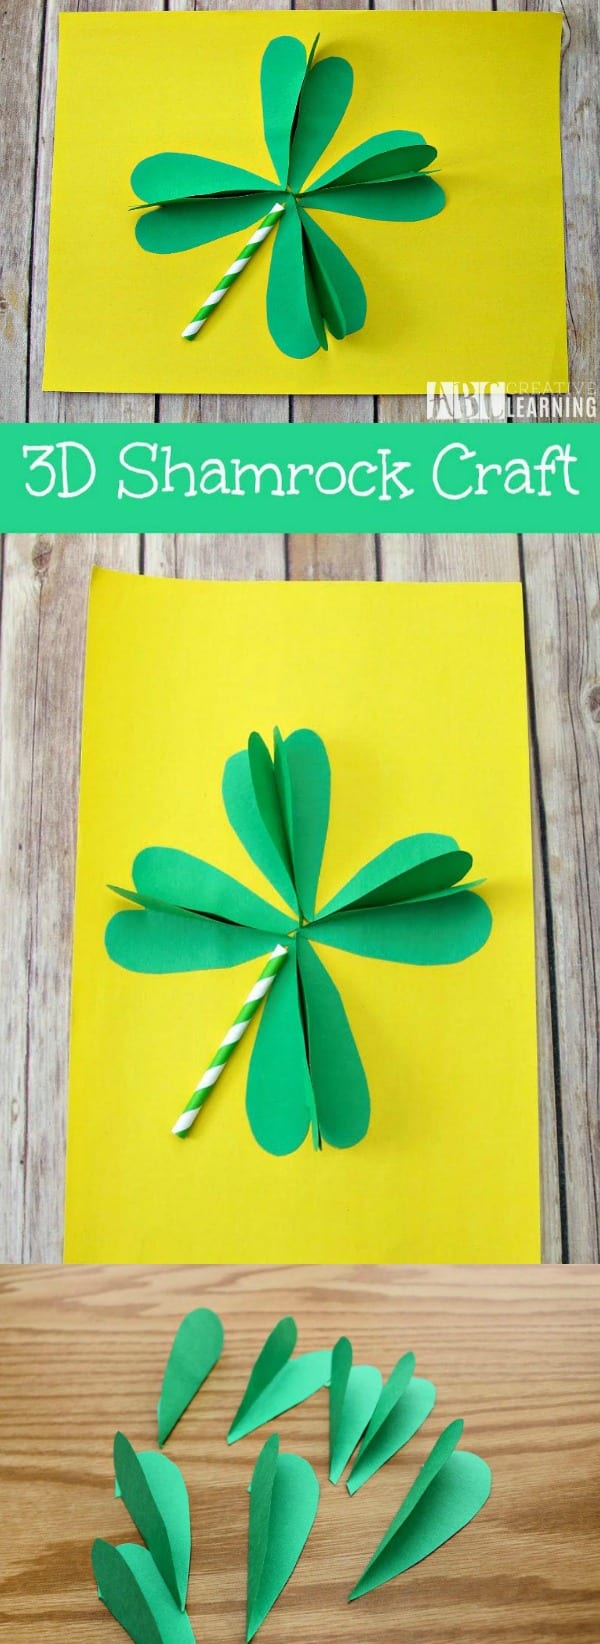 3D Shamrock Craft for St. Patrick's Day